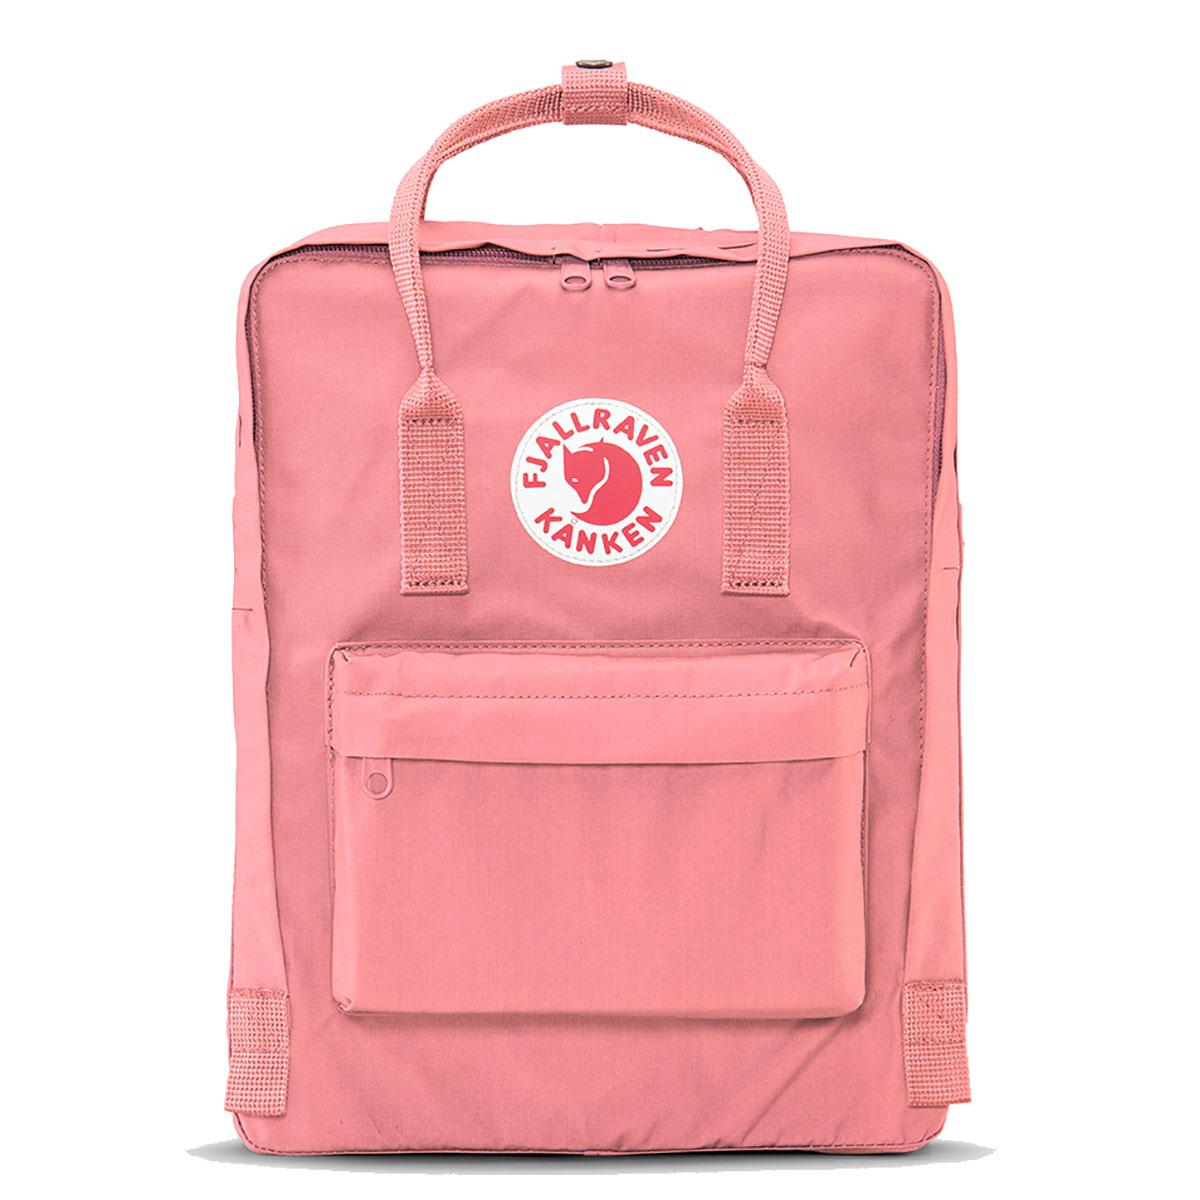 Kanken Pink Backpack